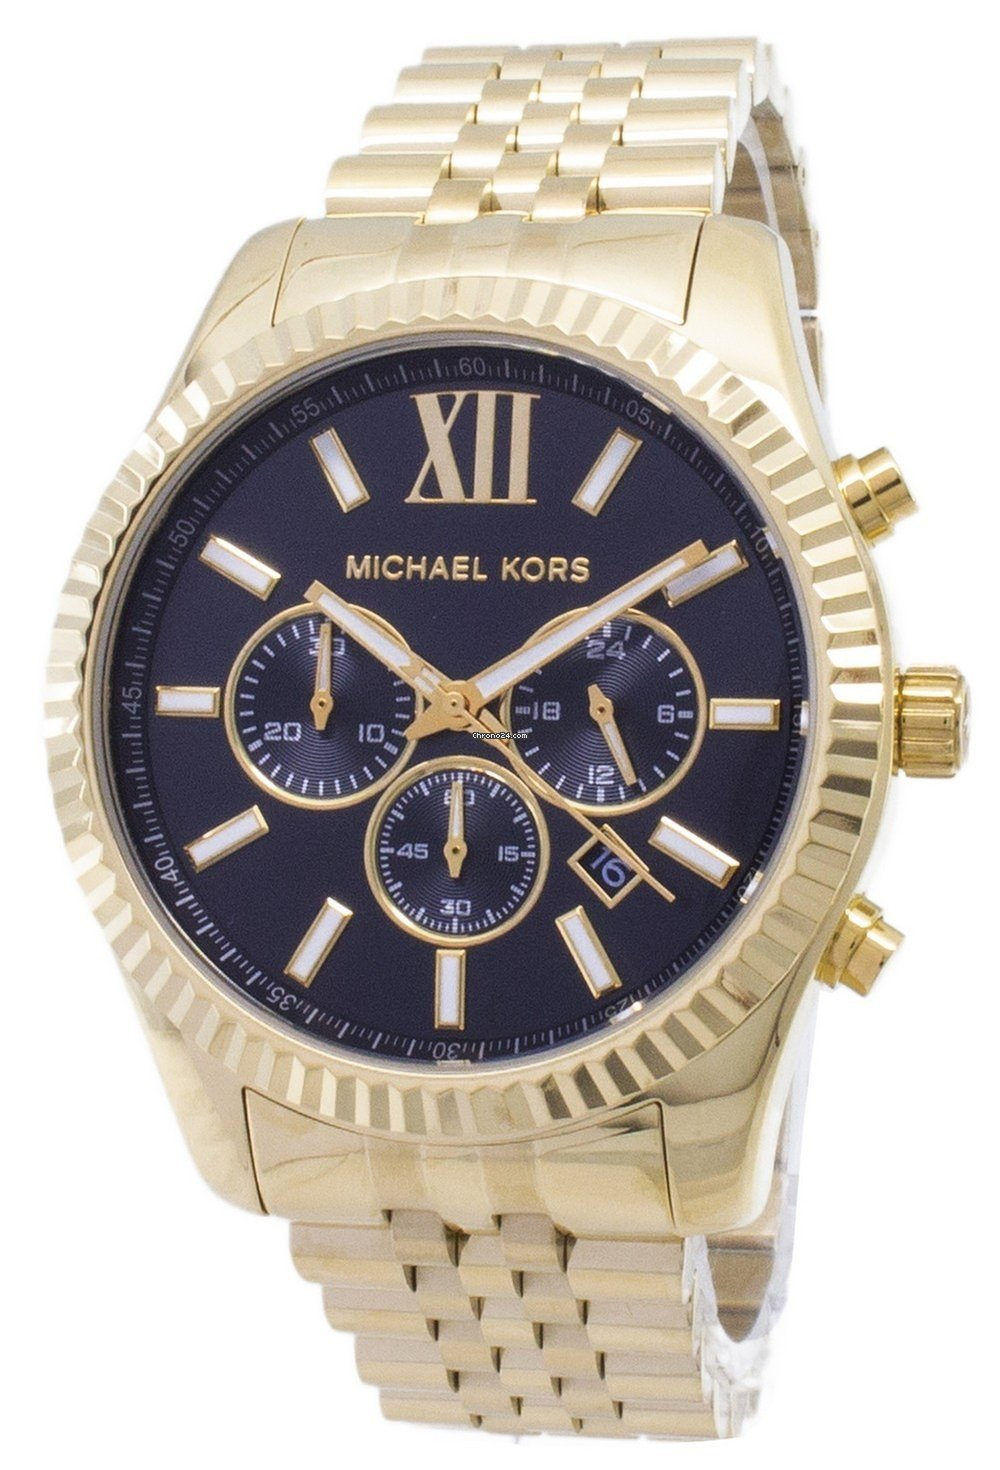 19b4c40a1de1 Michael Kors Lexington Chronograph Black Dial Gold-tone MK8286... for  150  for sale from a Seller on Chrono24